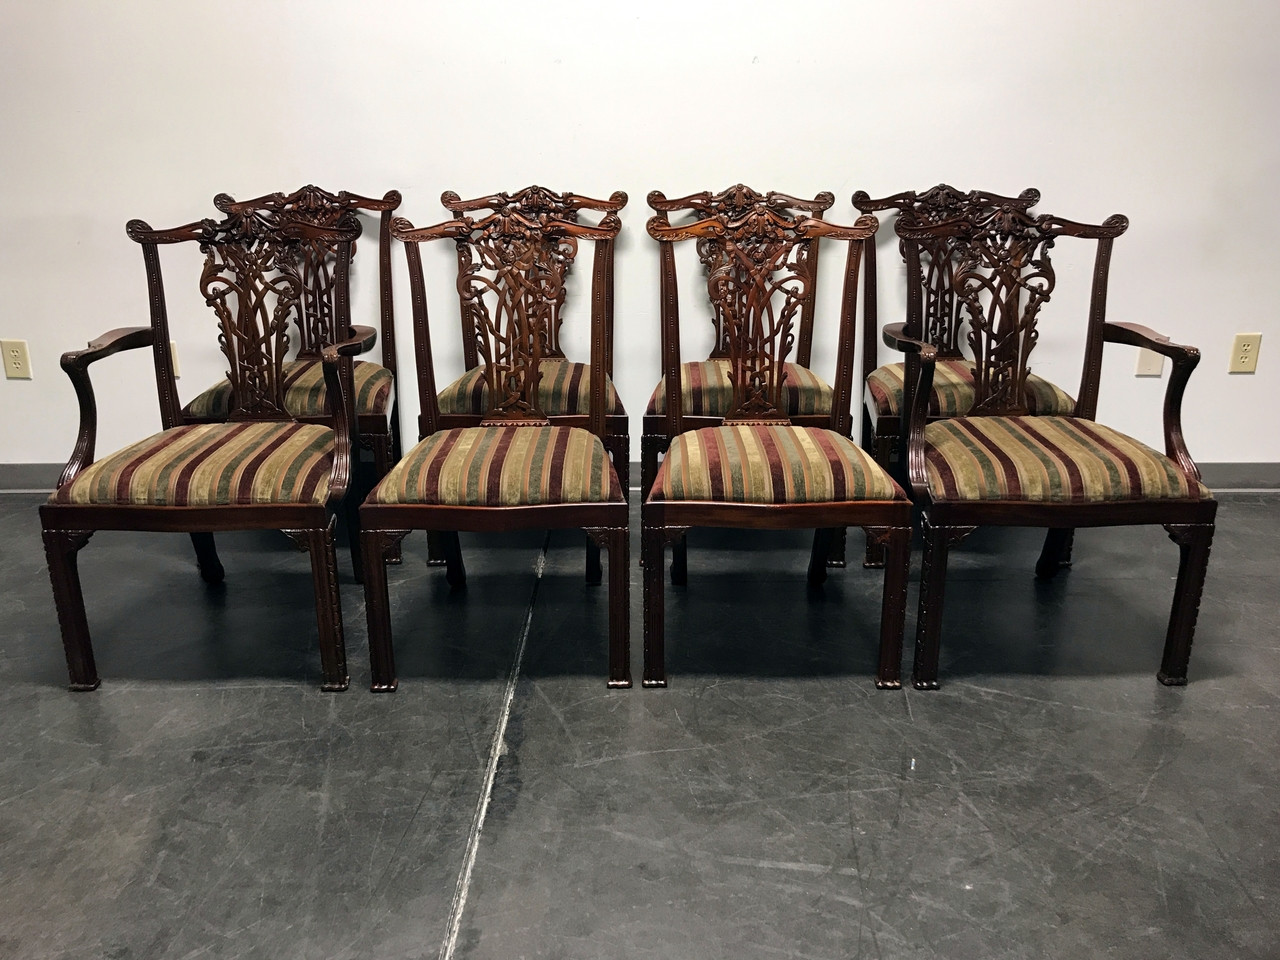 chippendale dining chairs. MAITLAND SMITH Mahogany Chippendale Dining Chairs - Set Of 8